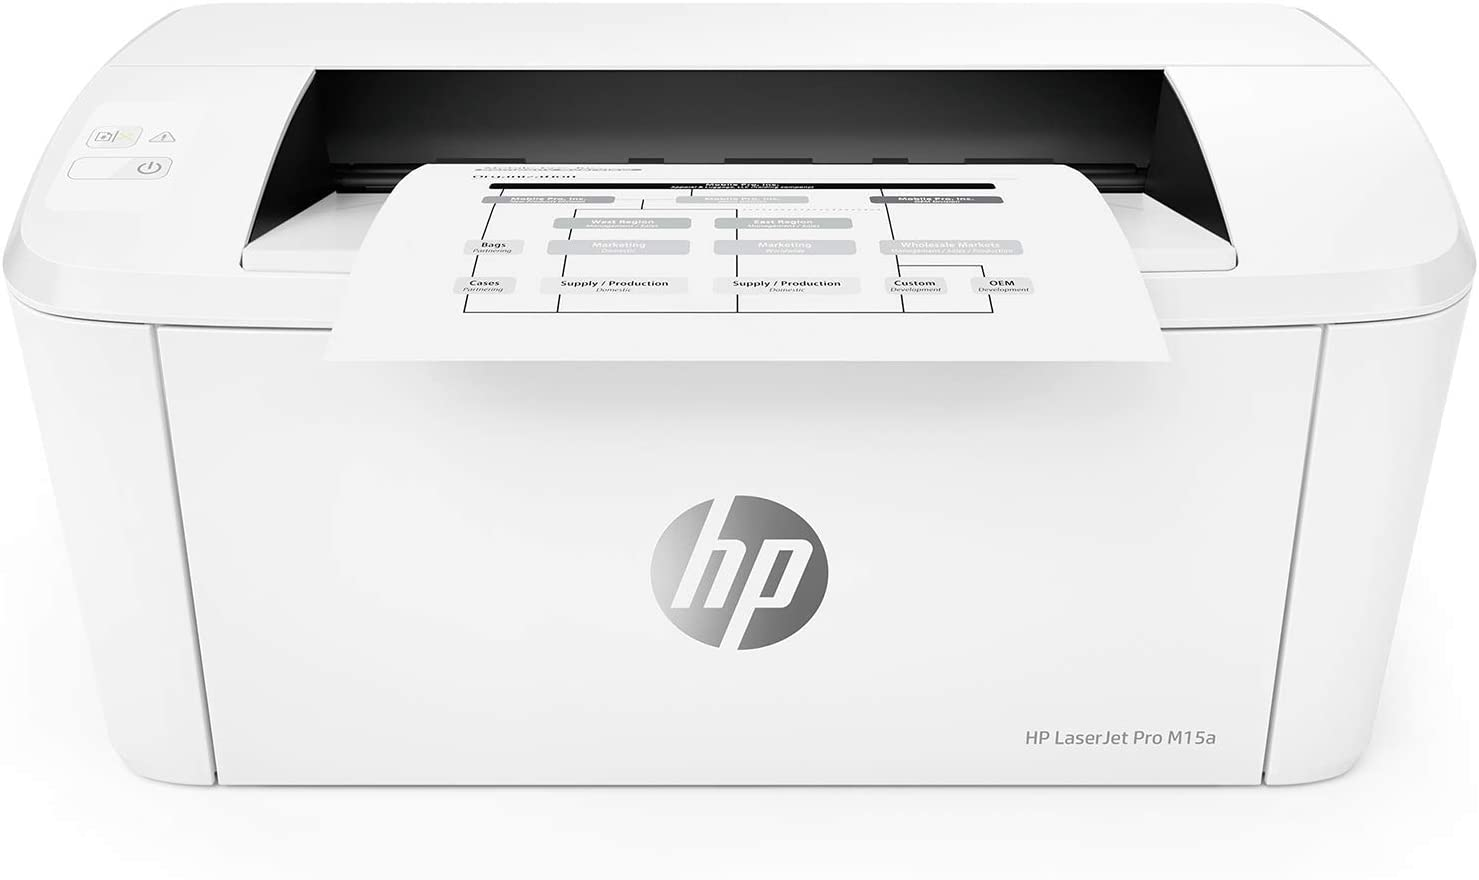 HP Laserjet Pro M15a World's Smallest Black-and-White Monochrome Laser Printer W2G50A (Includes Toner and USB Cable) (Renewed)